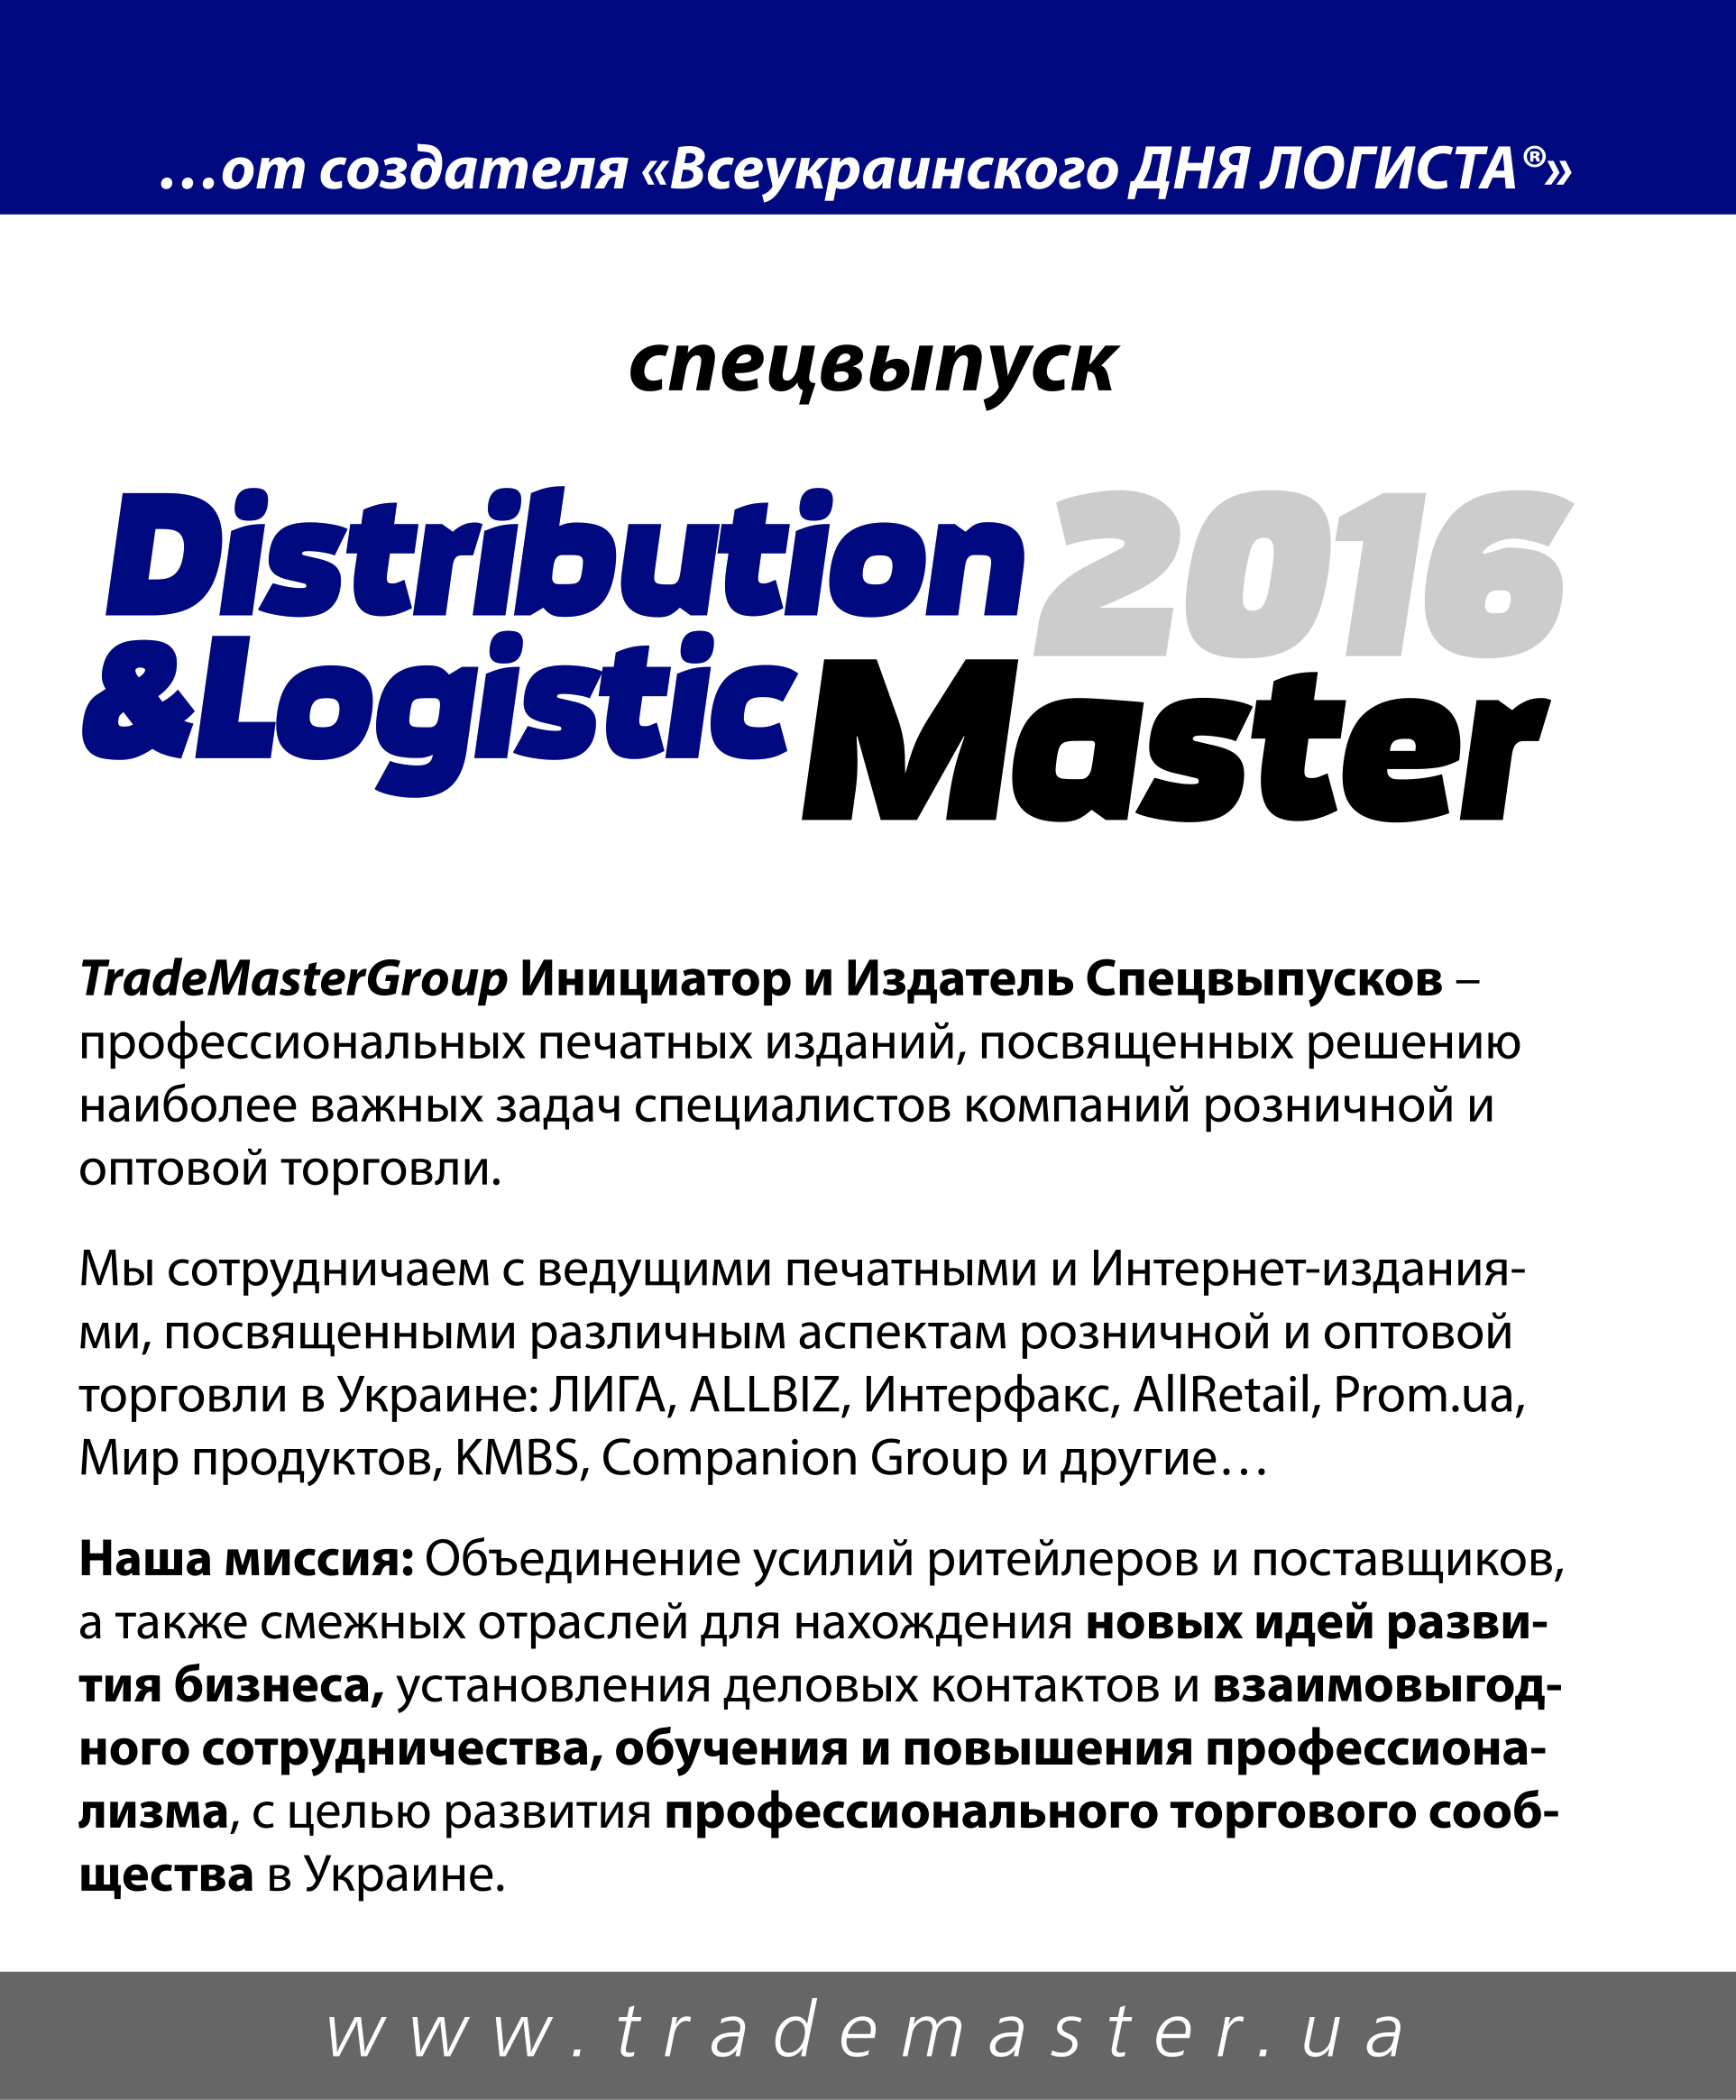 ������������ ���������� Distribution&LogisticMaster-2016